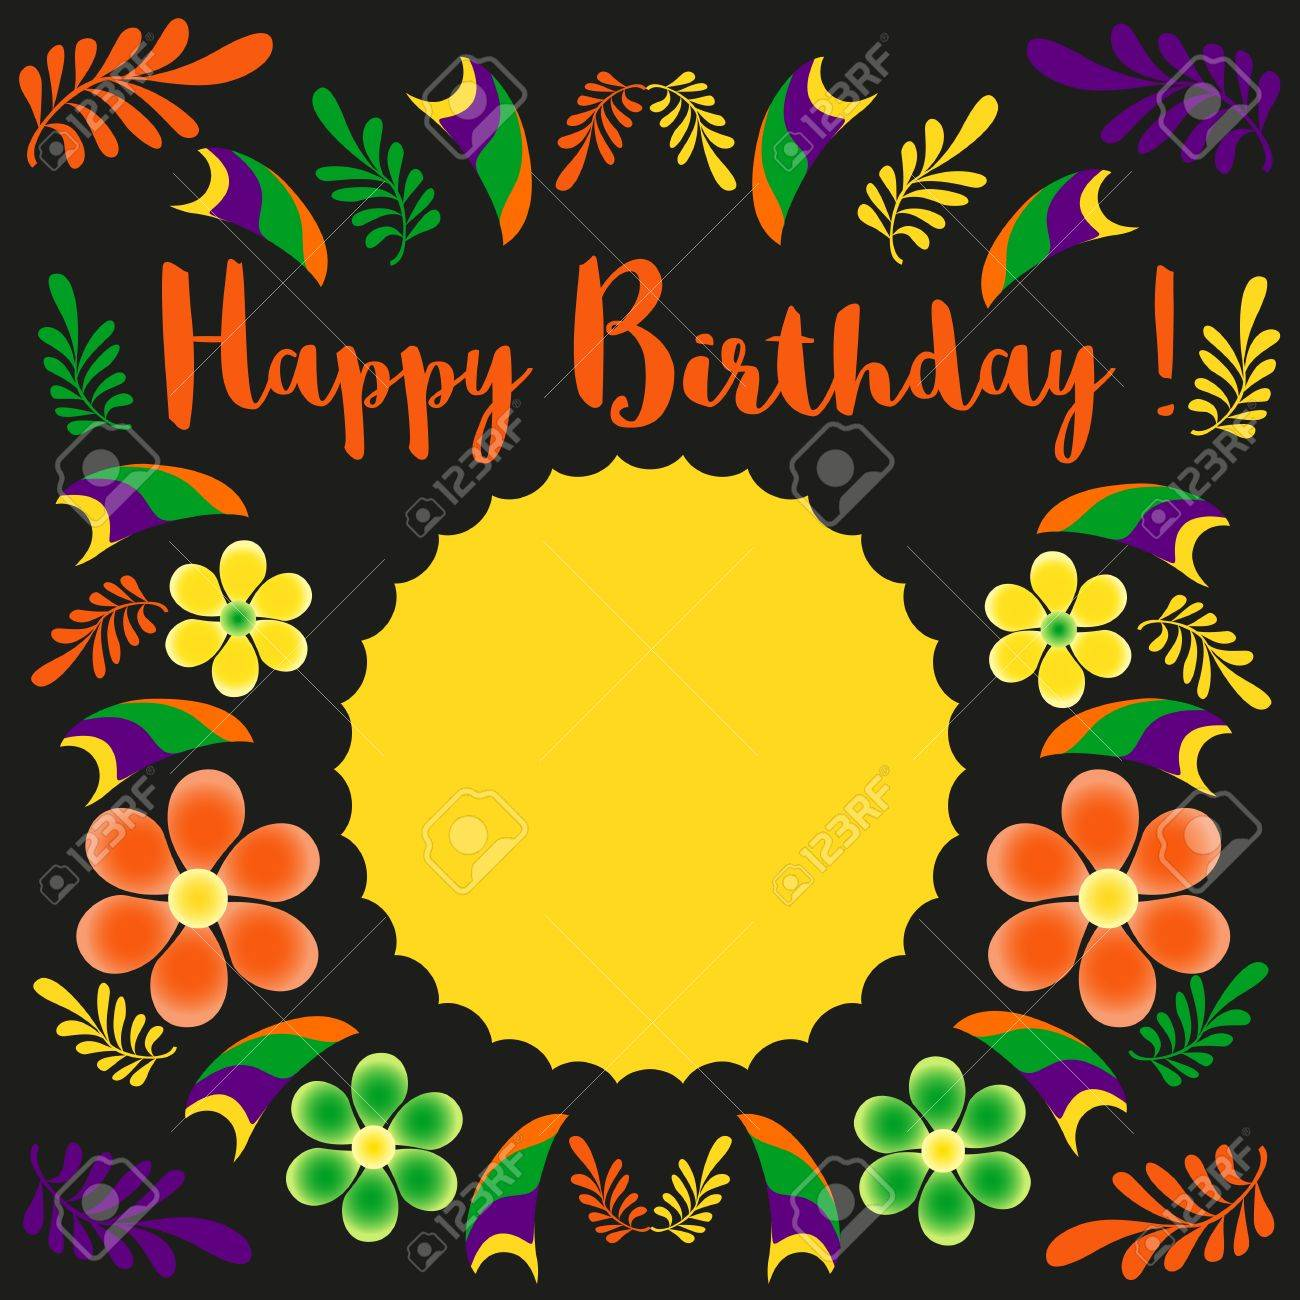 happy birthday poster template ; 57722172-happy-birthday-card-template-poster-on-party-celebration-blank-space-for-greeting-idea-for-design-of